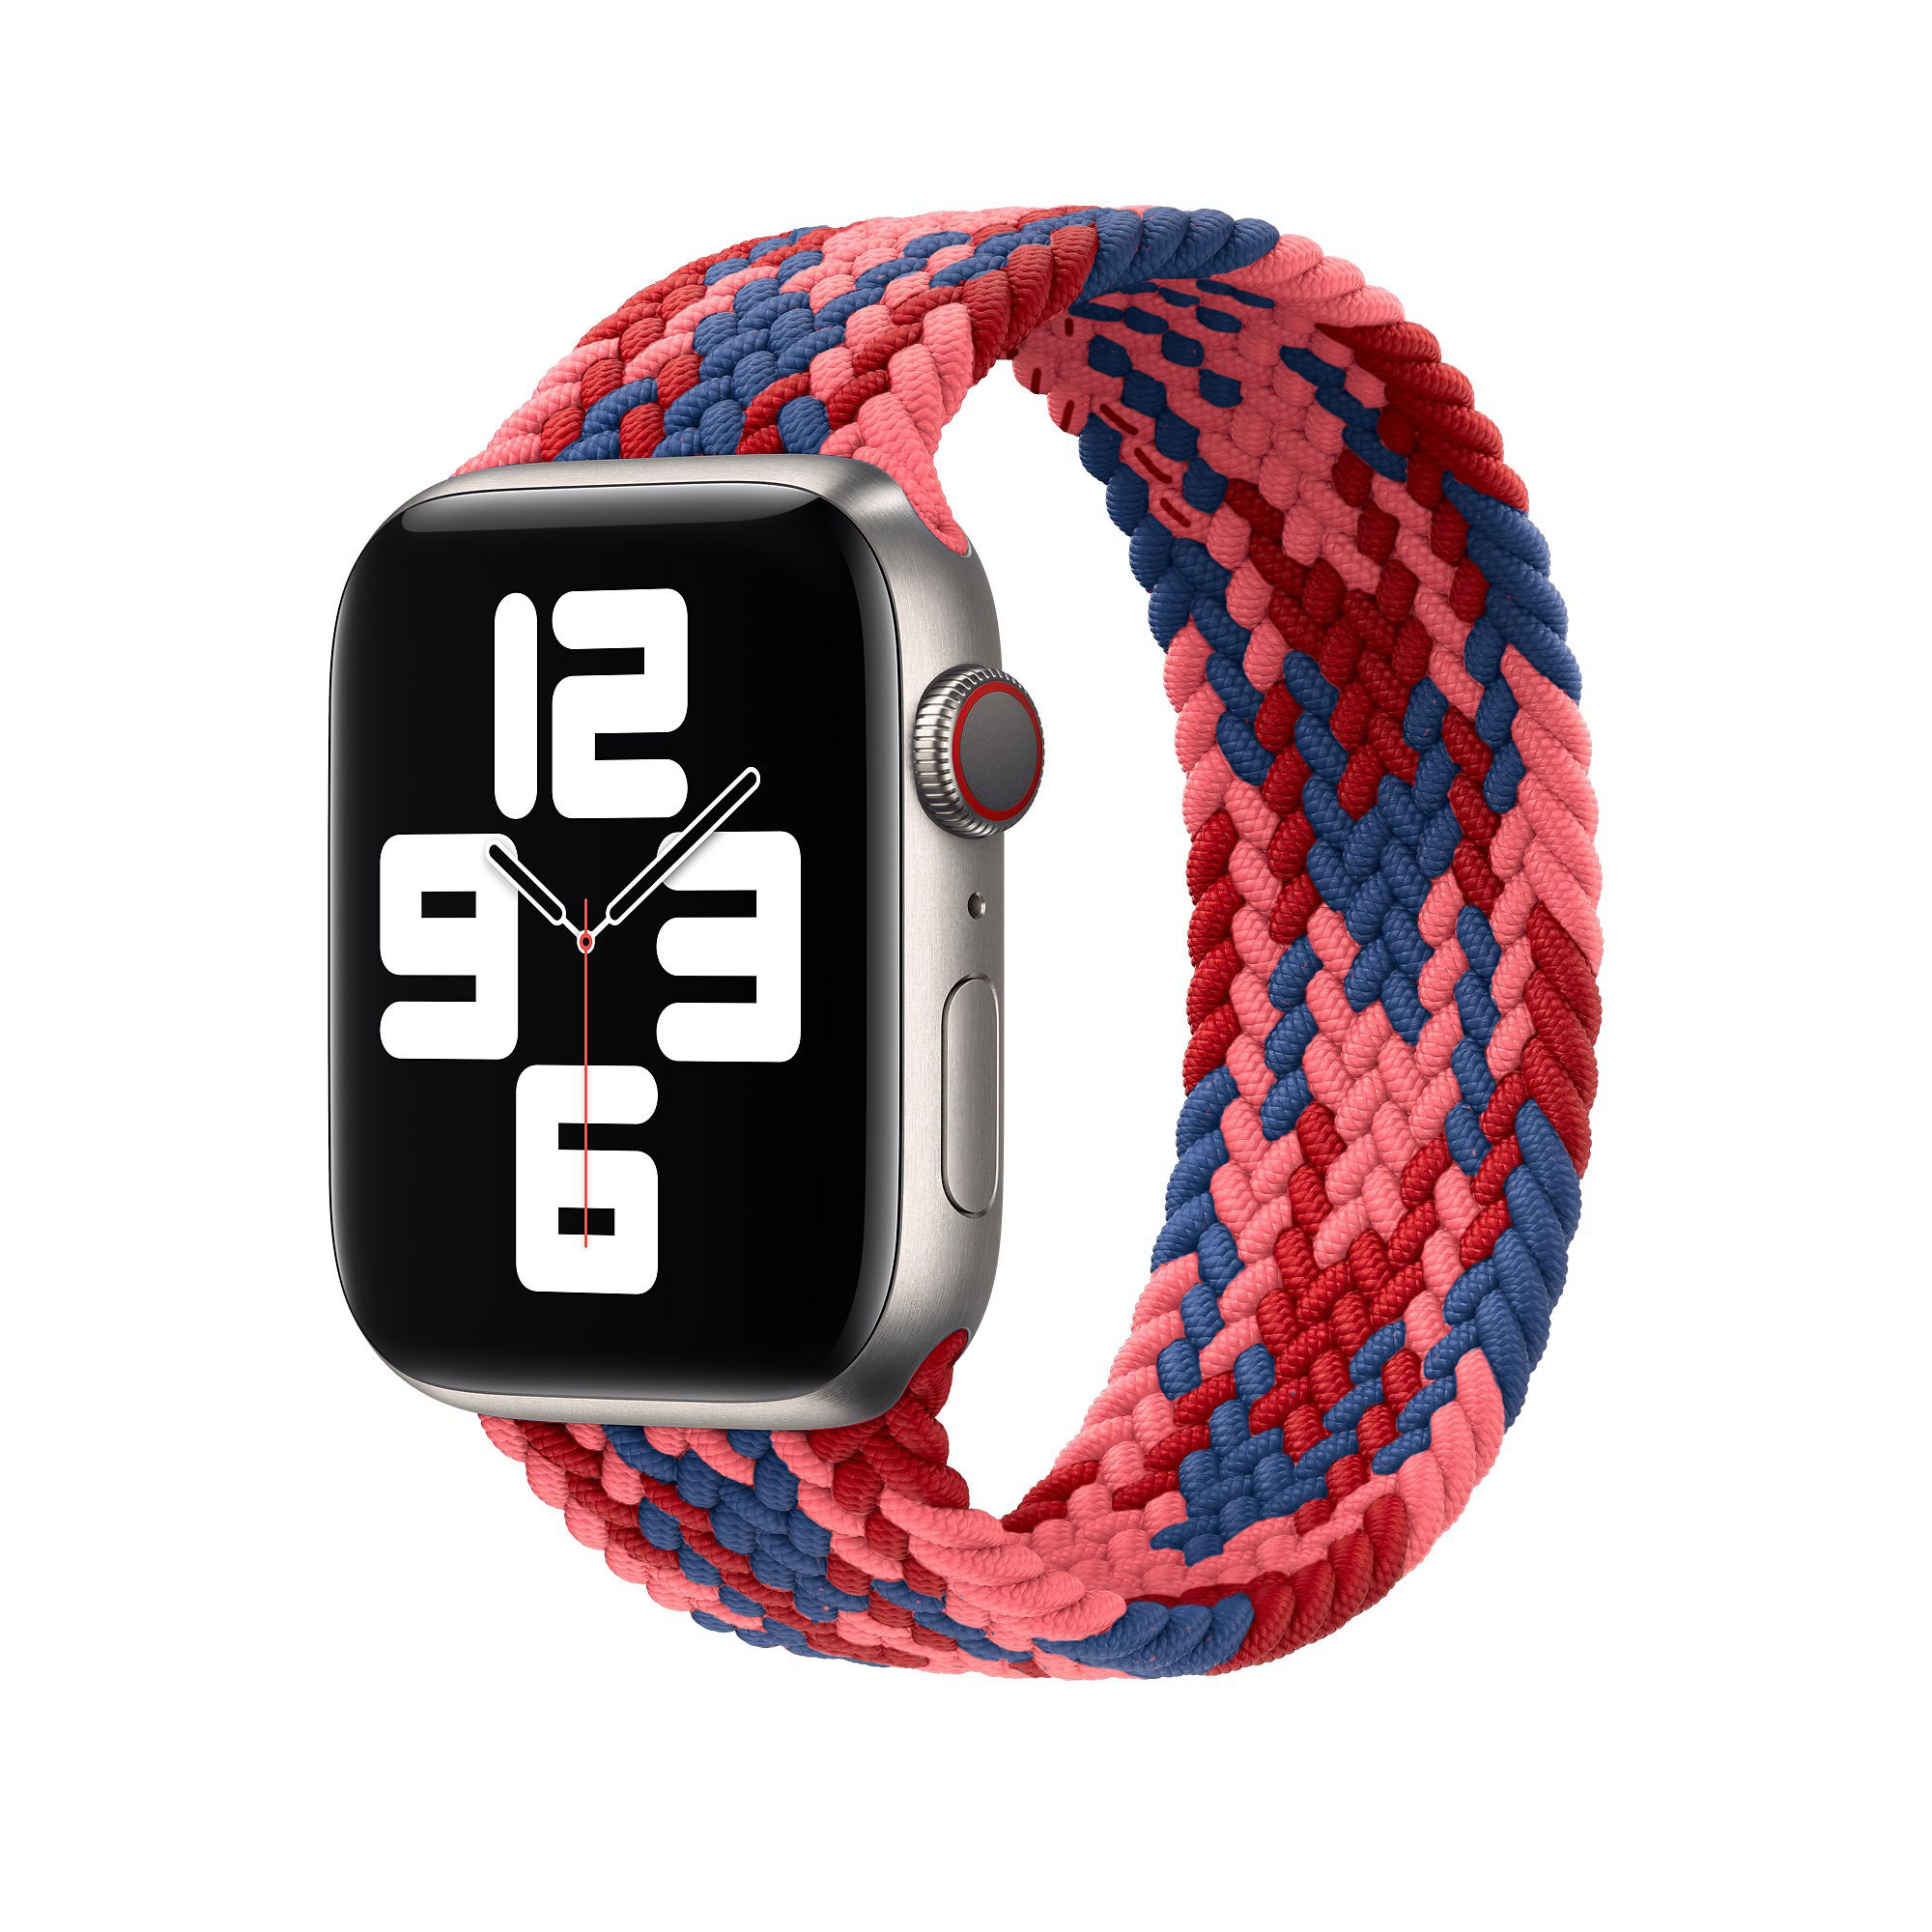 WiWU Braided Stretchy Solo Loop Band Compatible with Apple Watch Sport Straps Nylon Woven Elastic Watch Bands